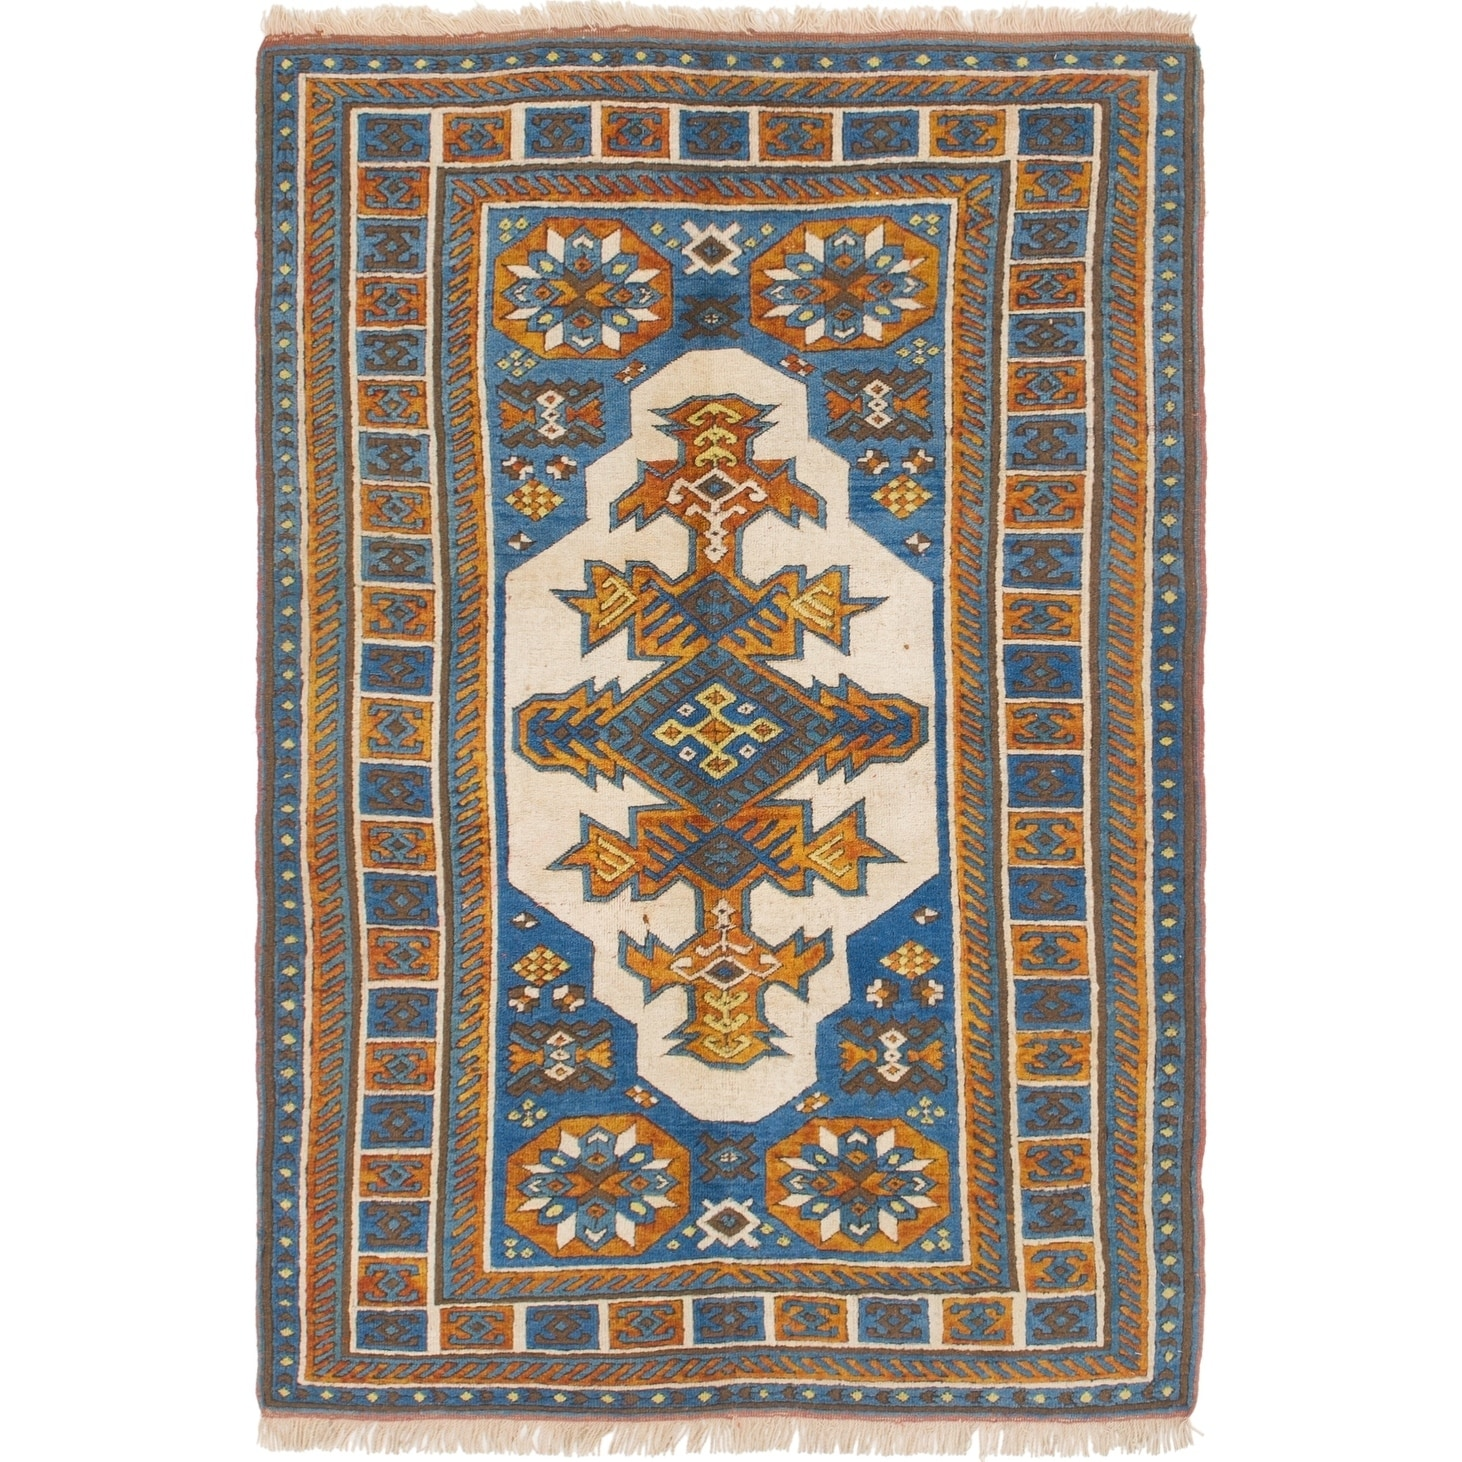 Hand Knotted Kars Semi Antique Wool Area Rug - 4' 2 x 6' 2 (Blue - 4' 2 x 6' 2)